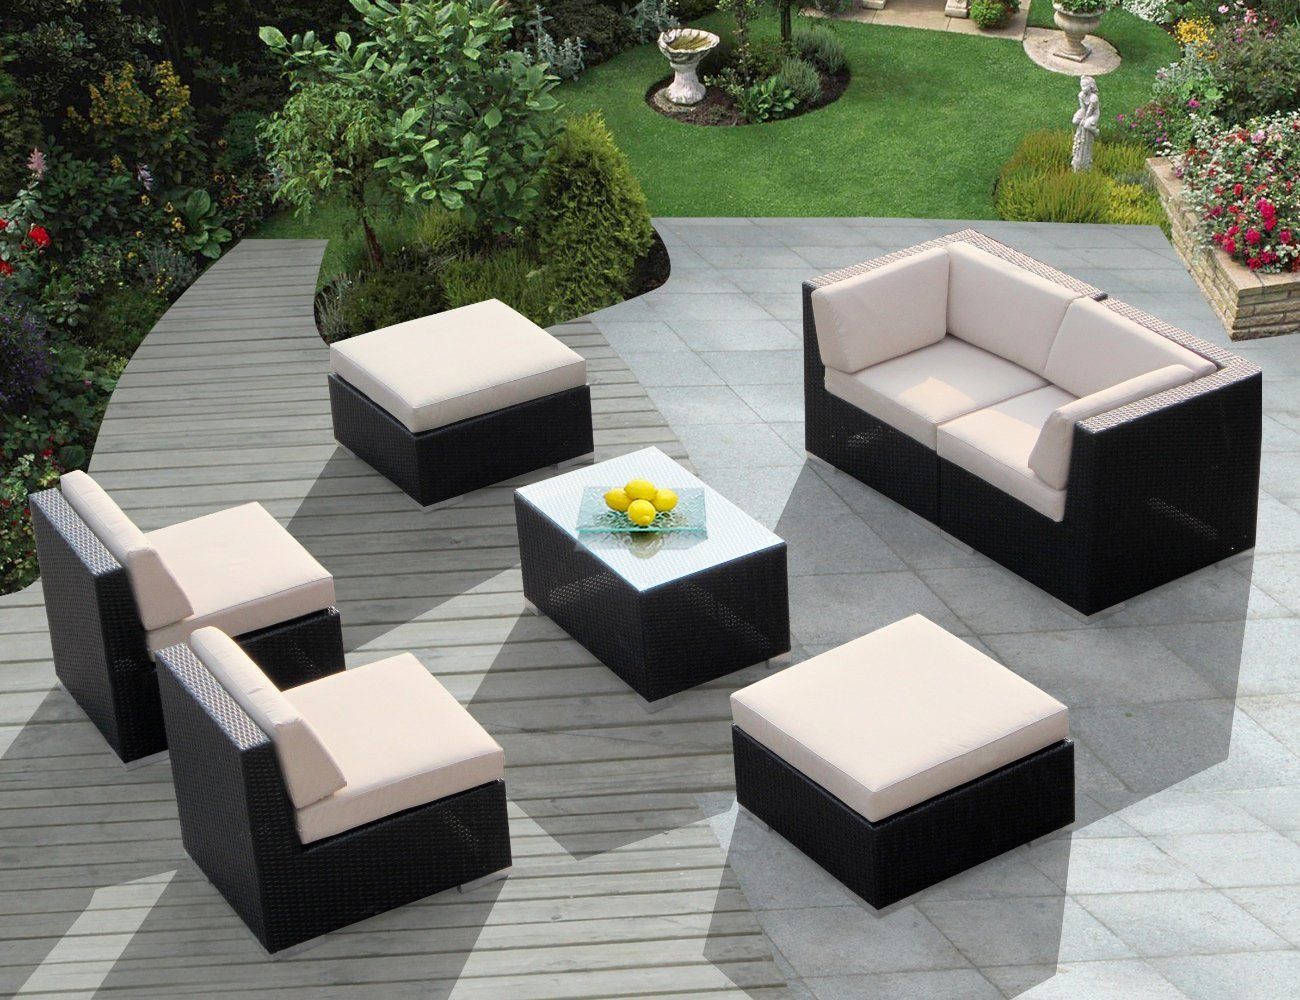 Strathwood outdoor patio furniture buy cheap strathwood for Outdoor patio couch set